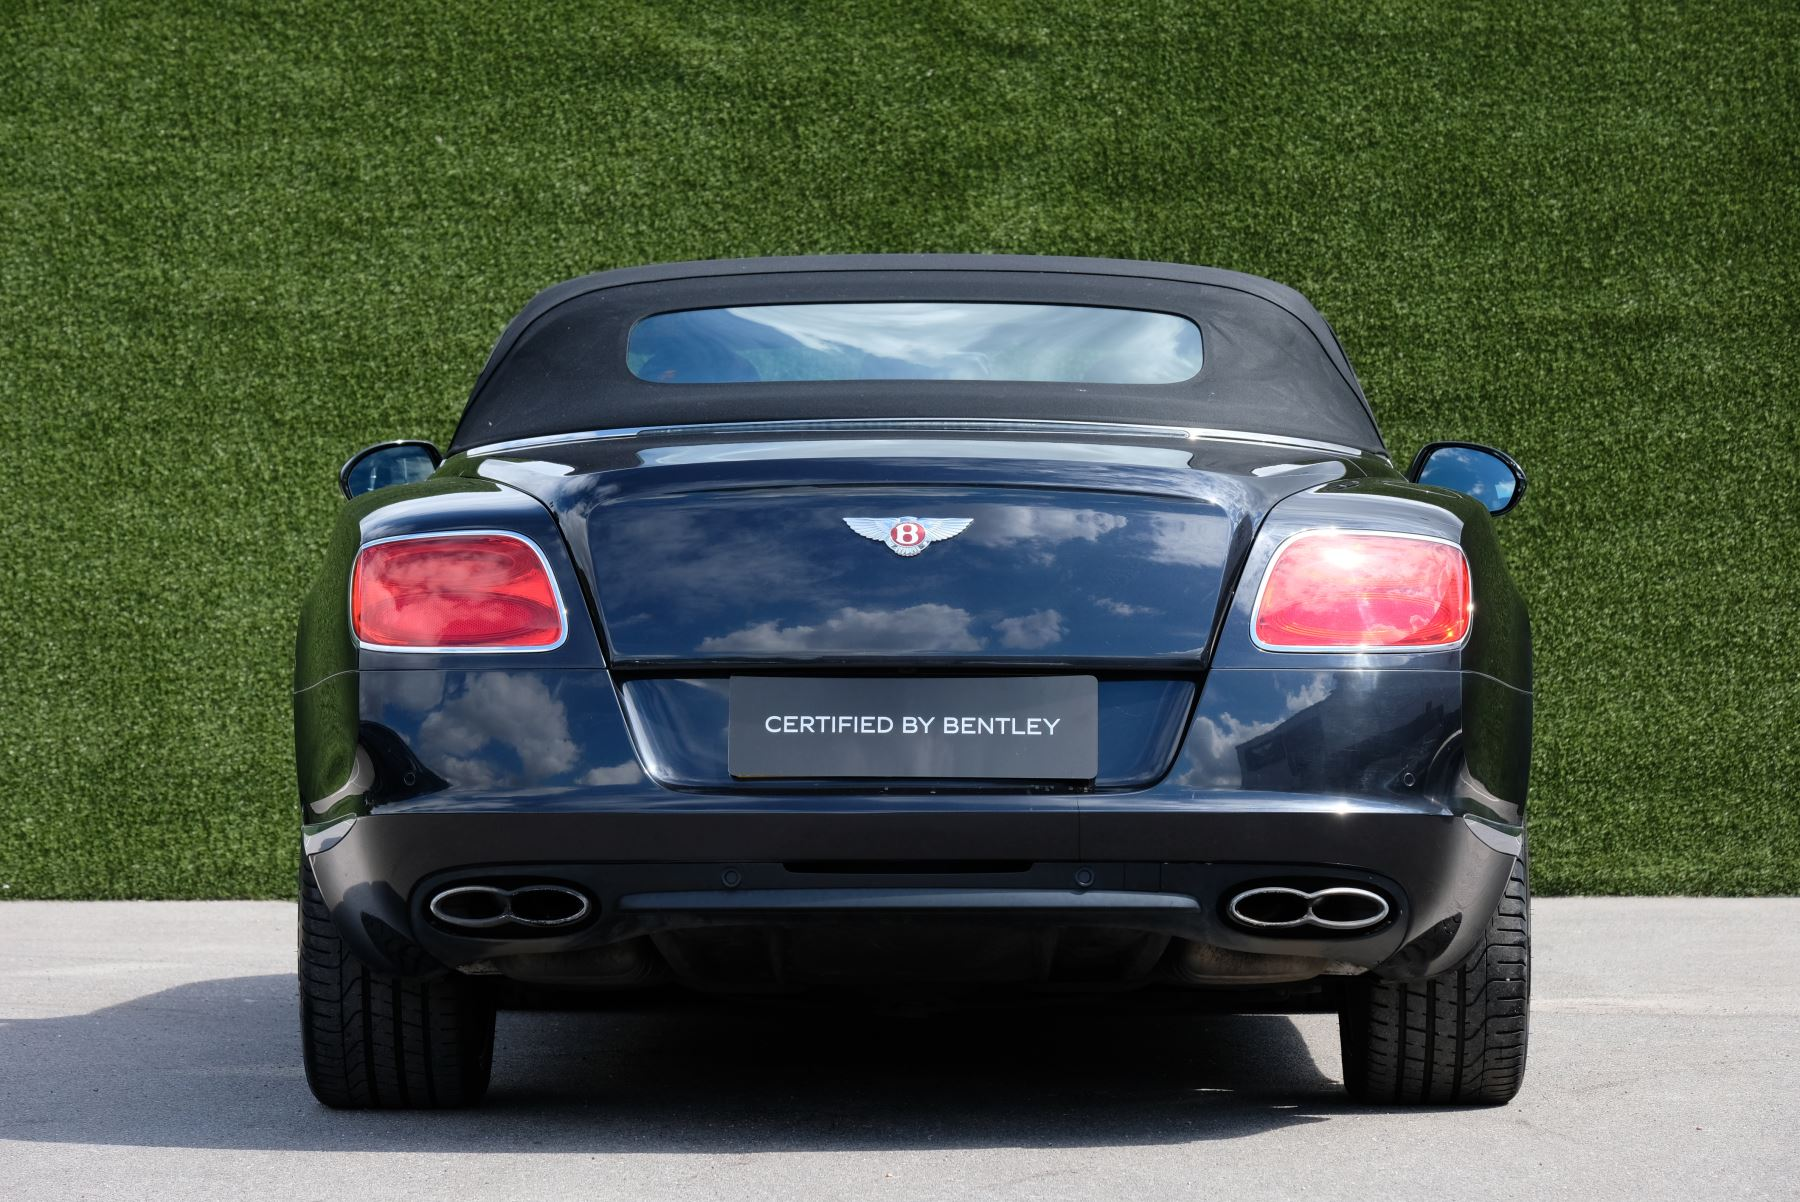 Bentley Continental GTC 4.0 V8 2dr image 4